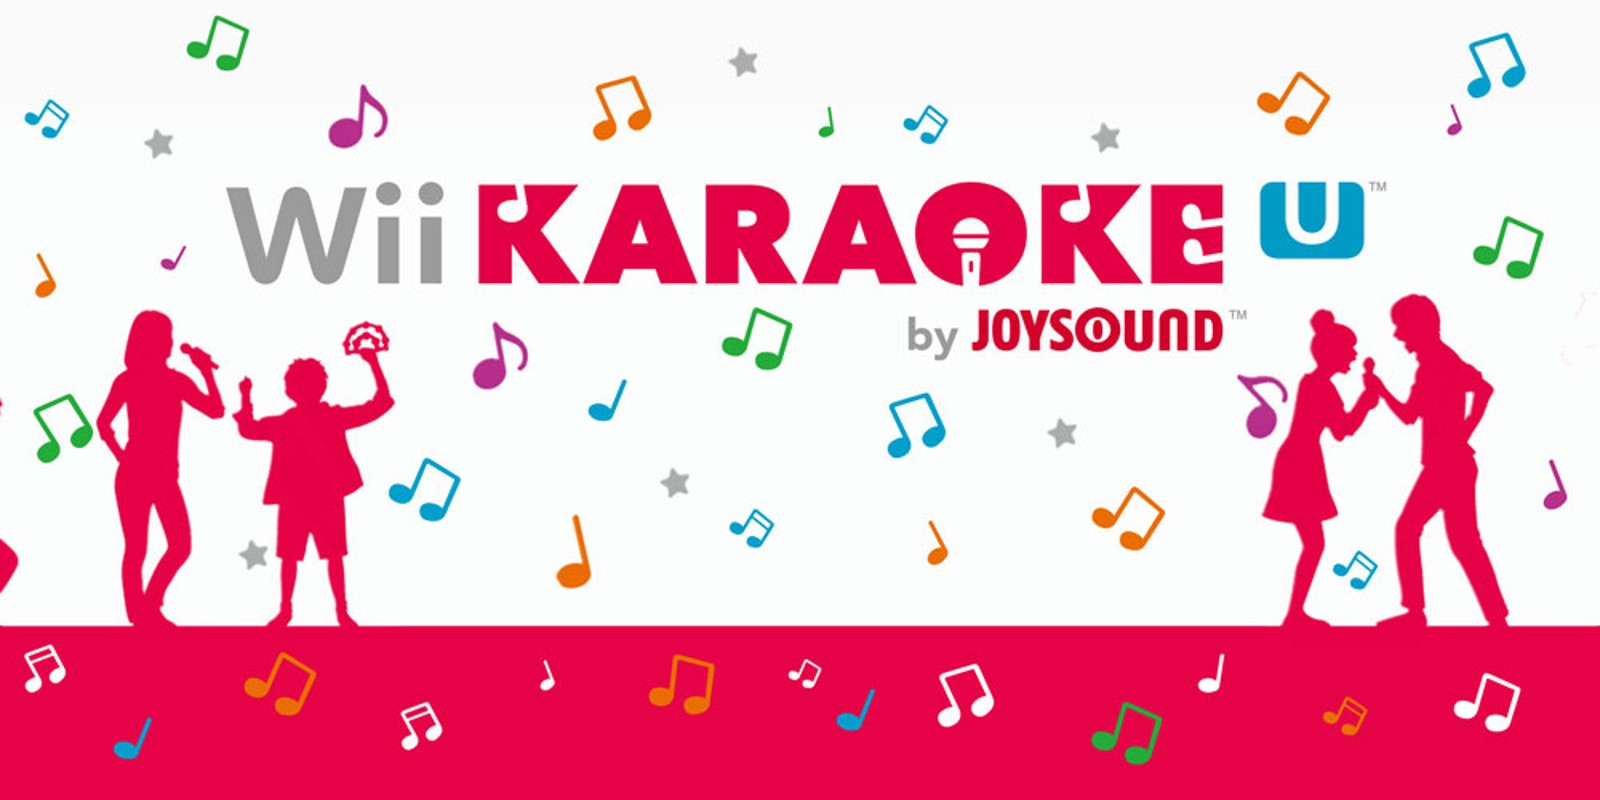 Wii Karaoke U by JOYSOUND